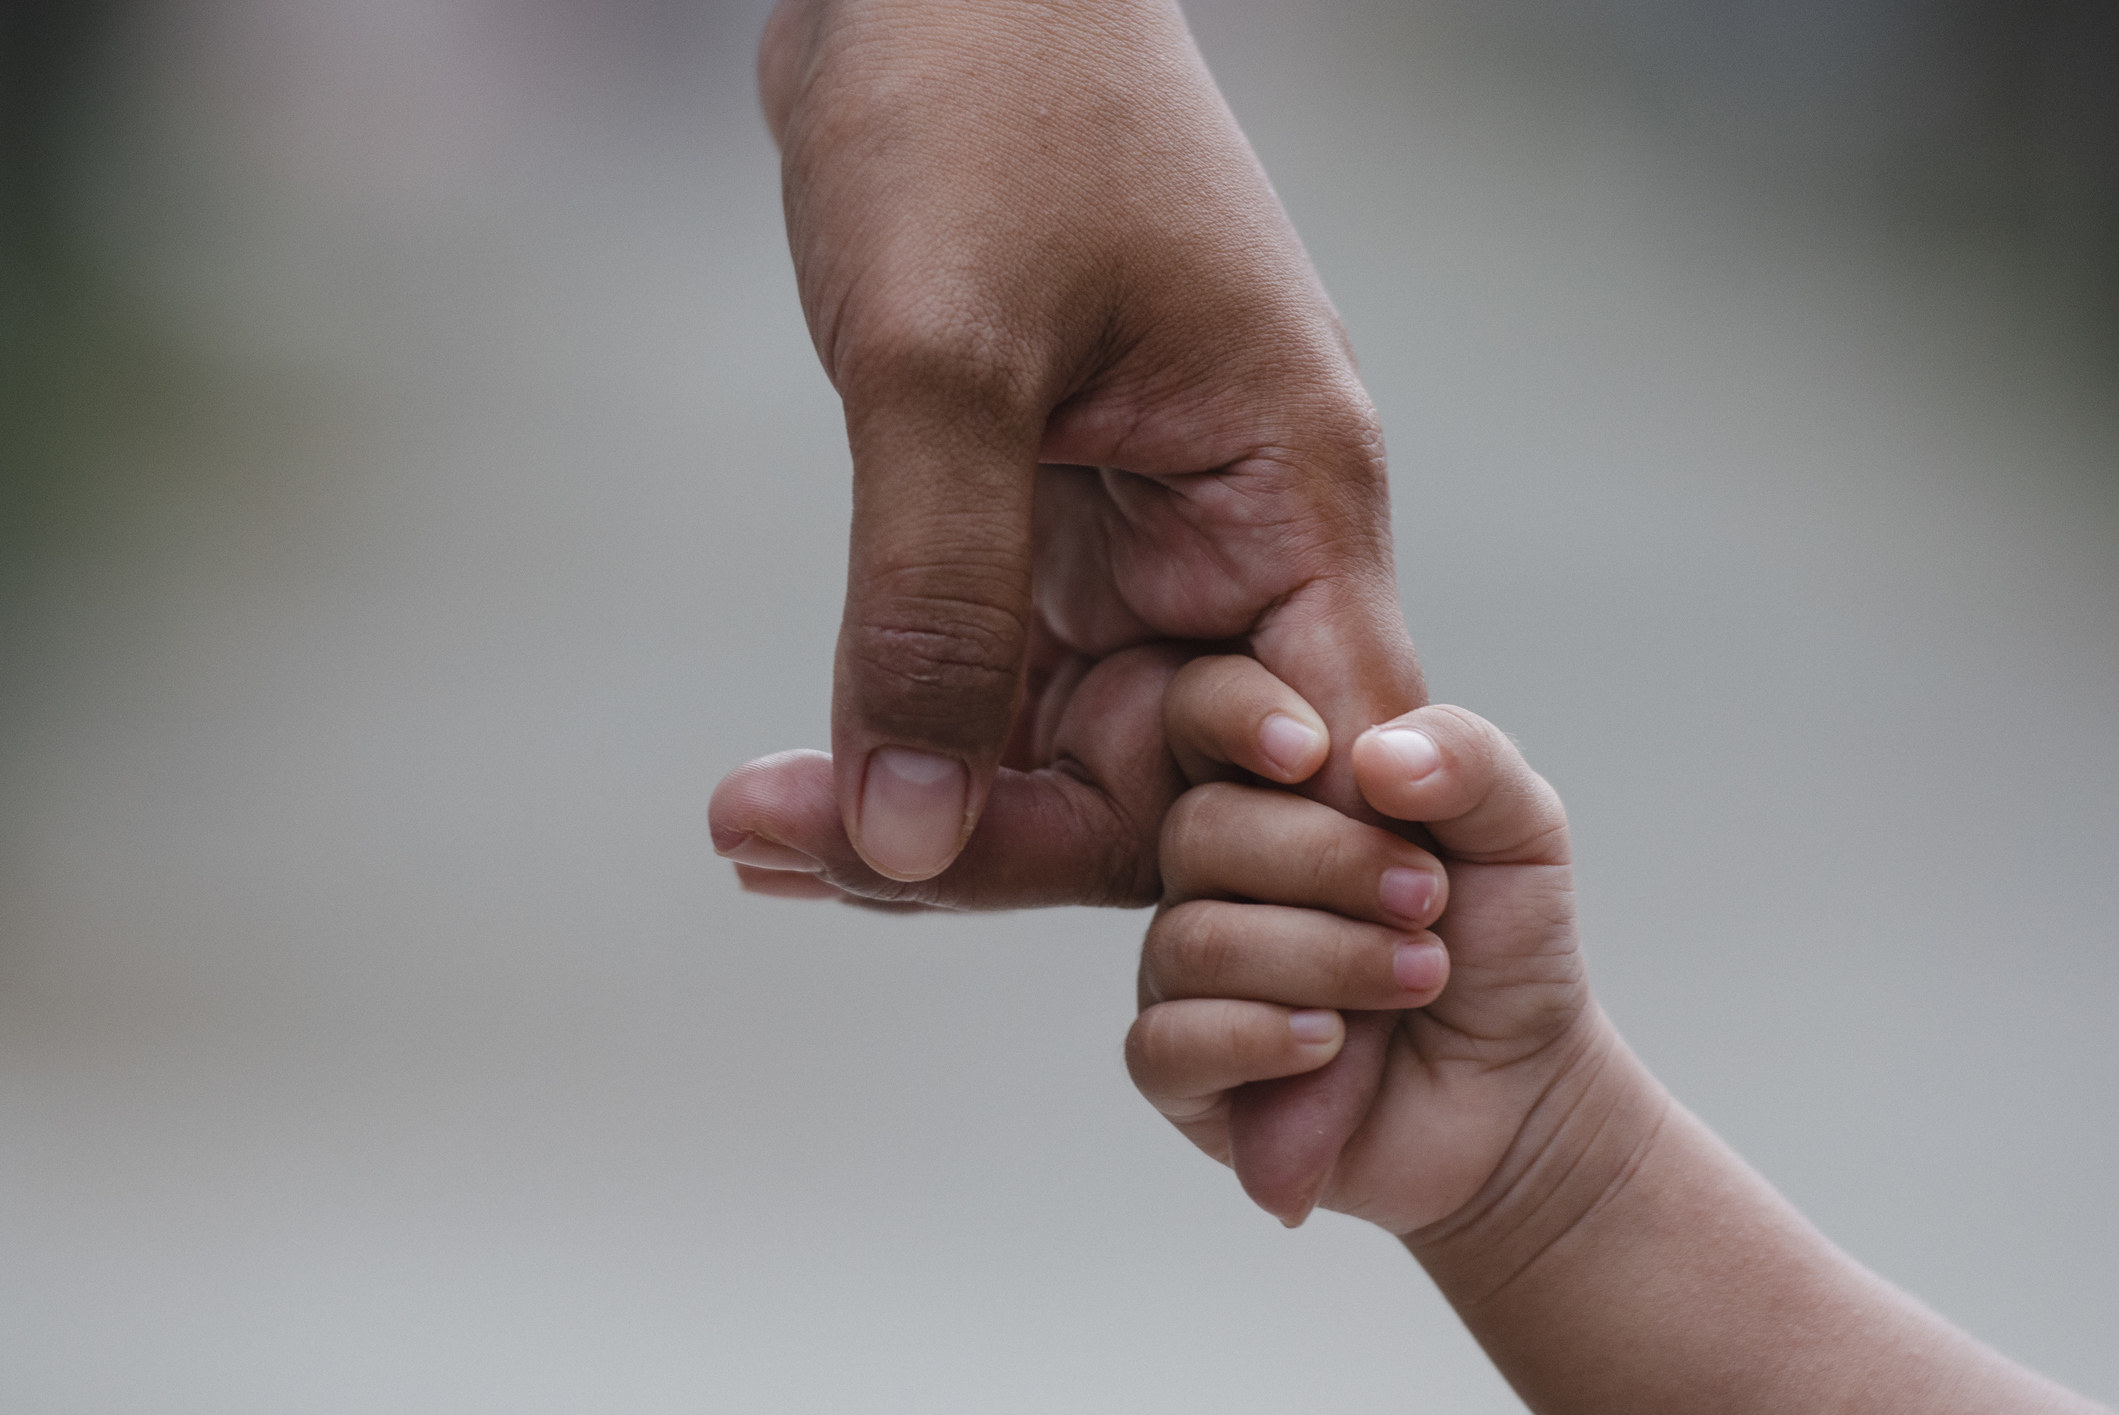 A parent and child holding hands